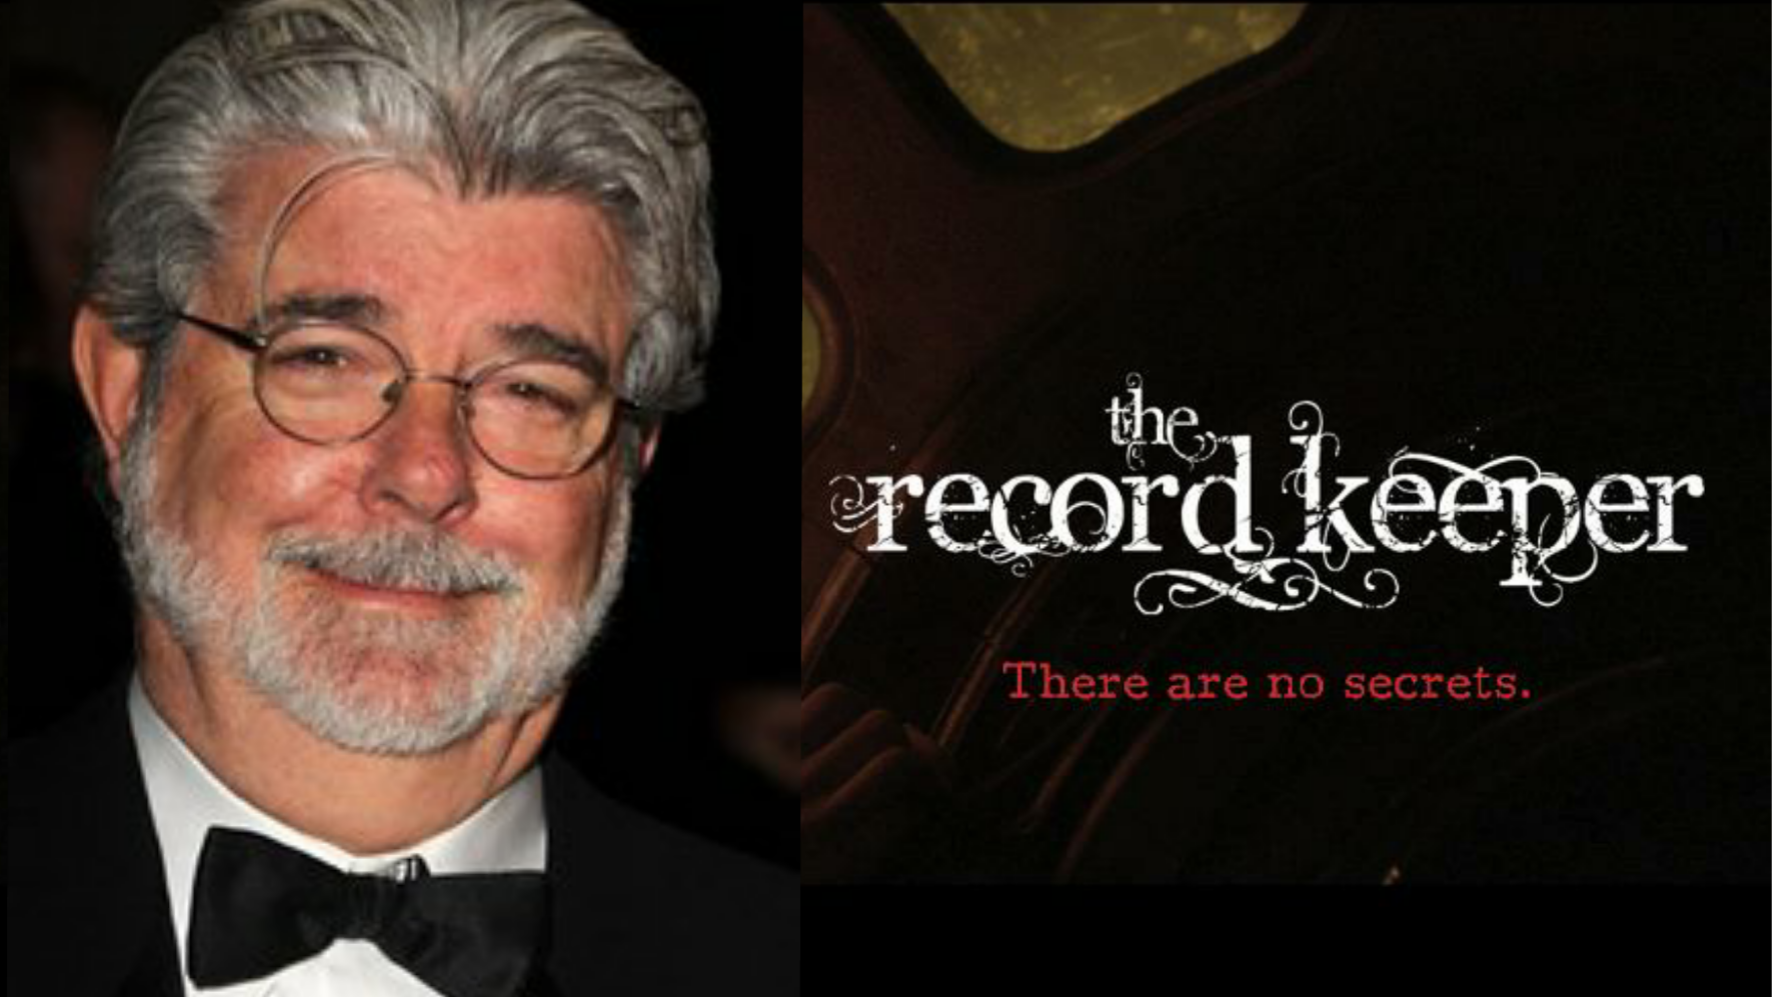 George Lucas to do 'Record Keeper' reboot called 'The Account Administrator'